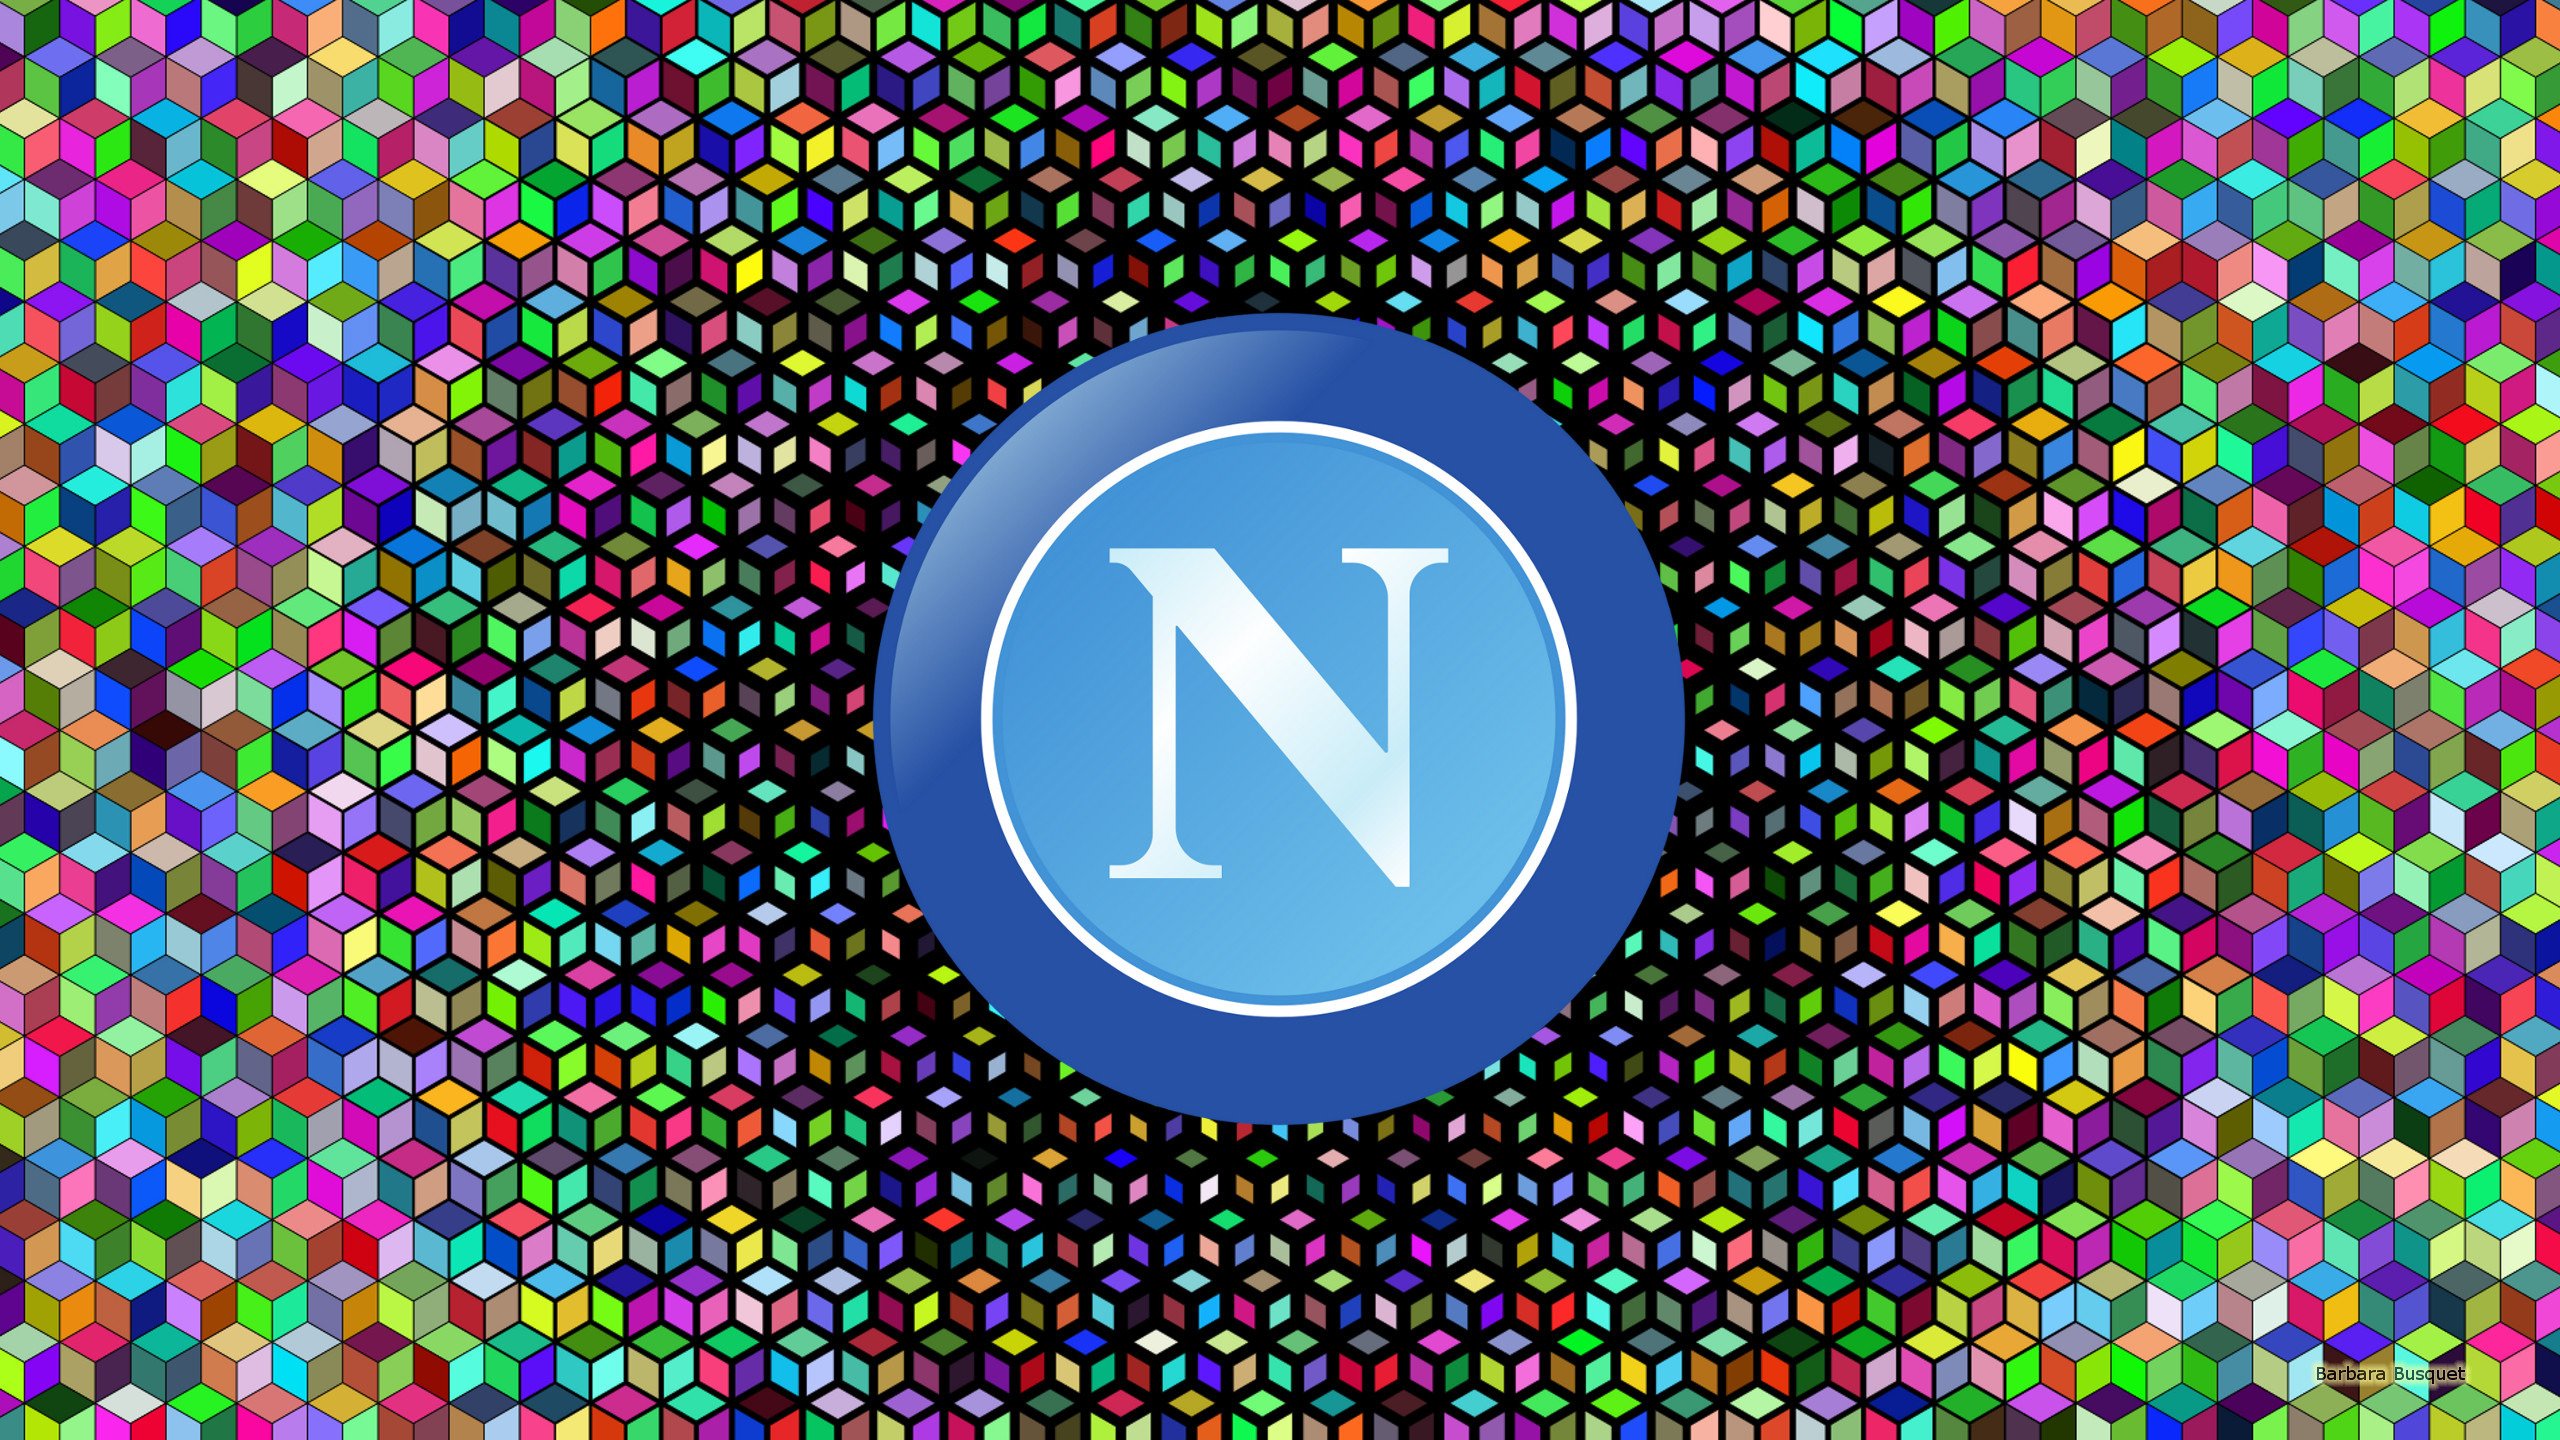 S.S.C. Napoli football logo wallpapers.